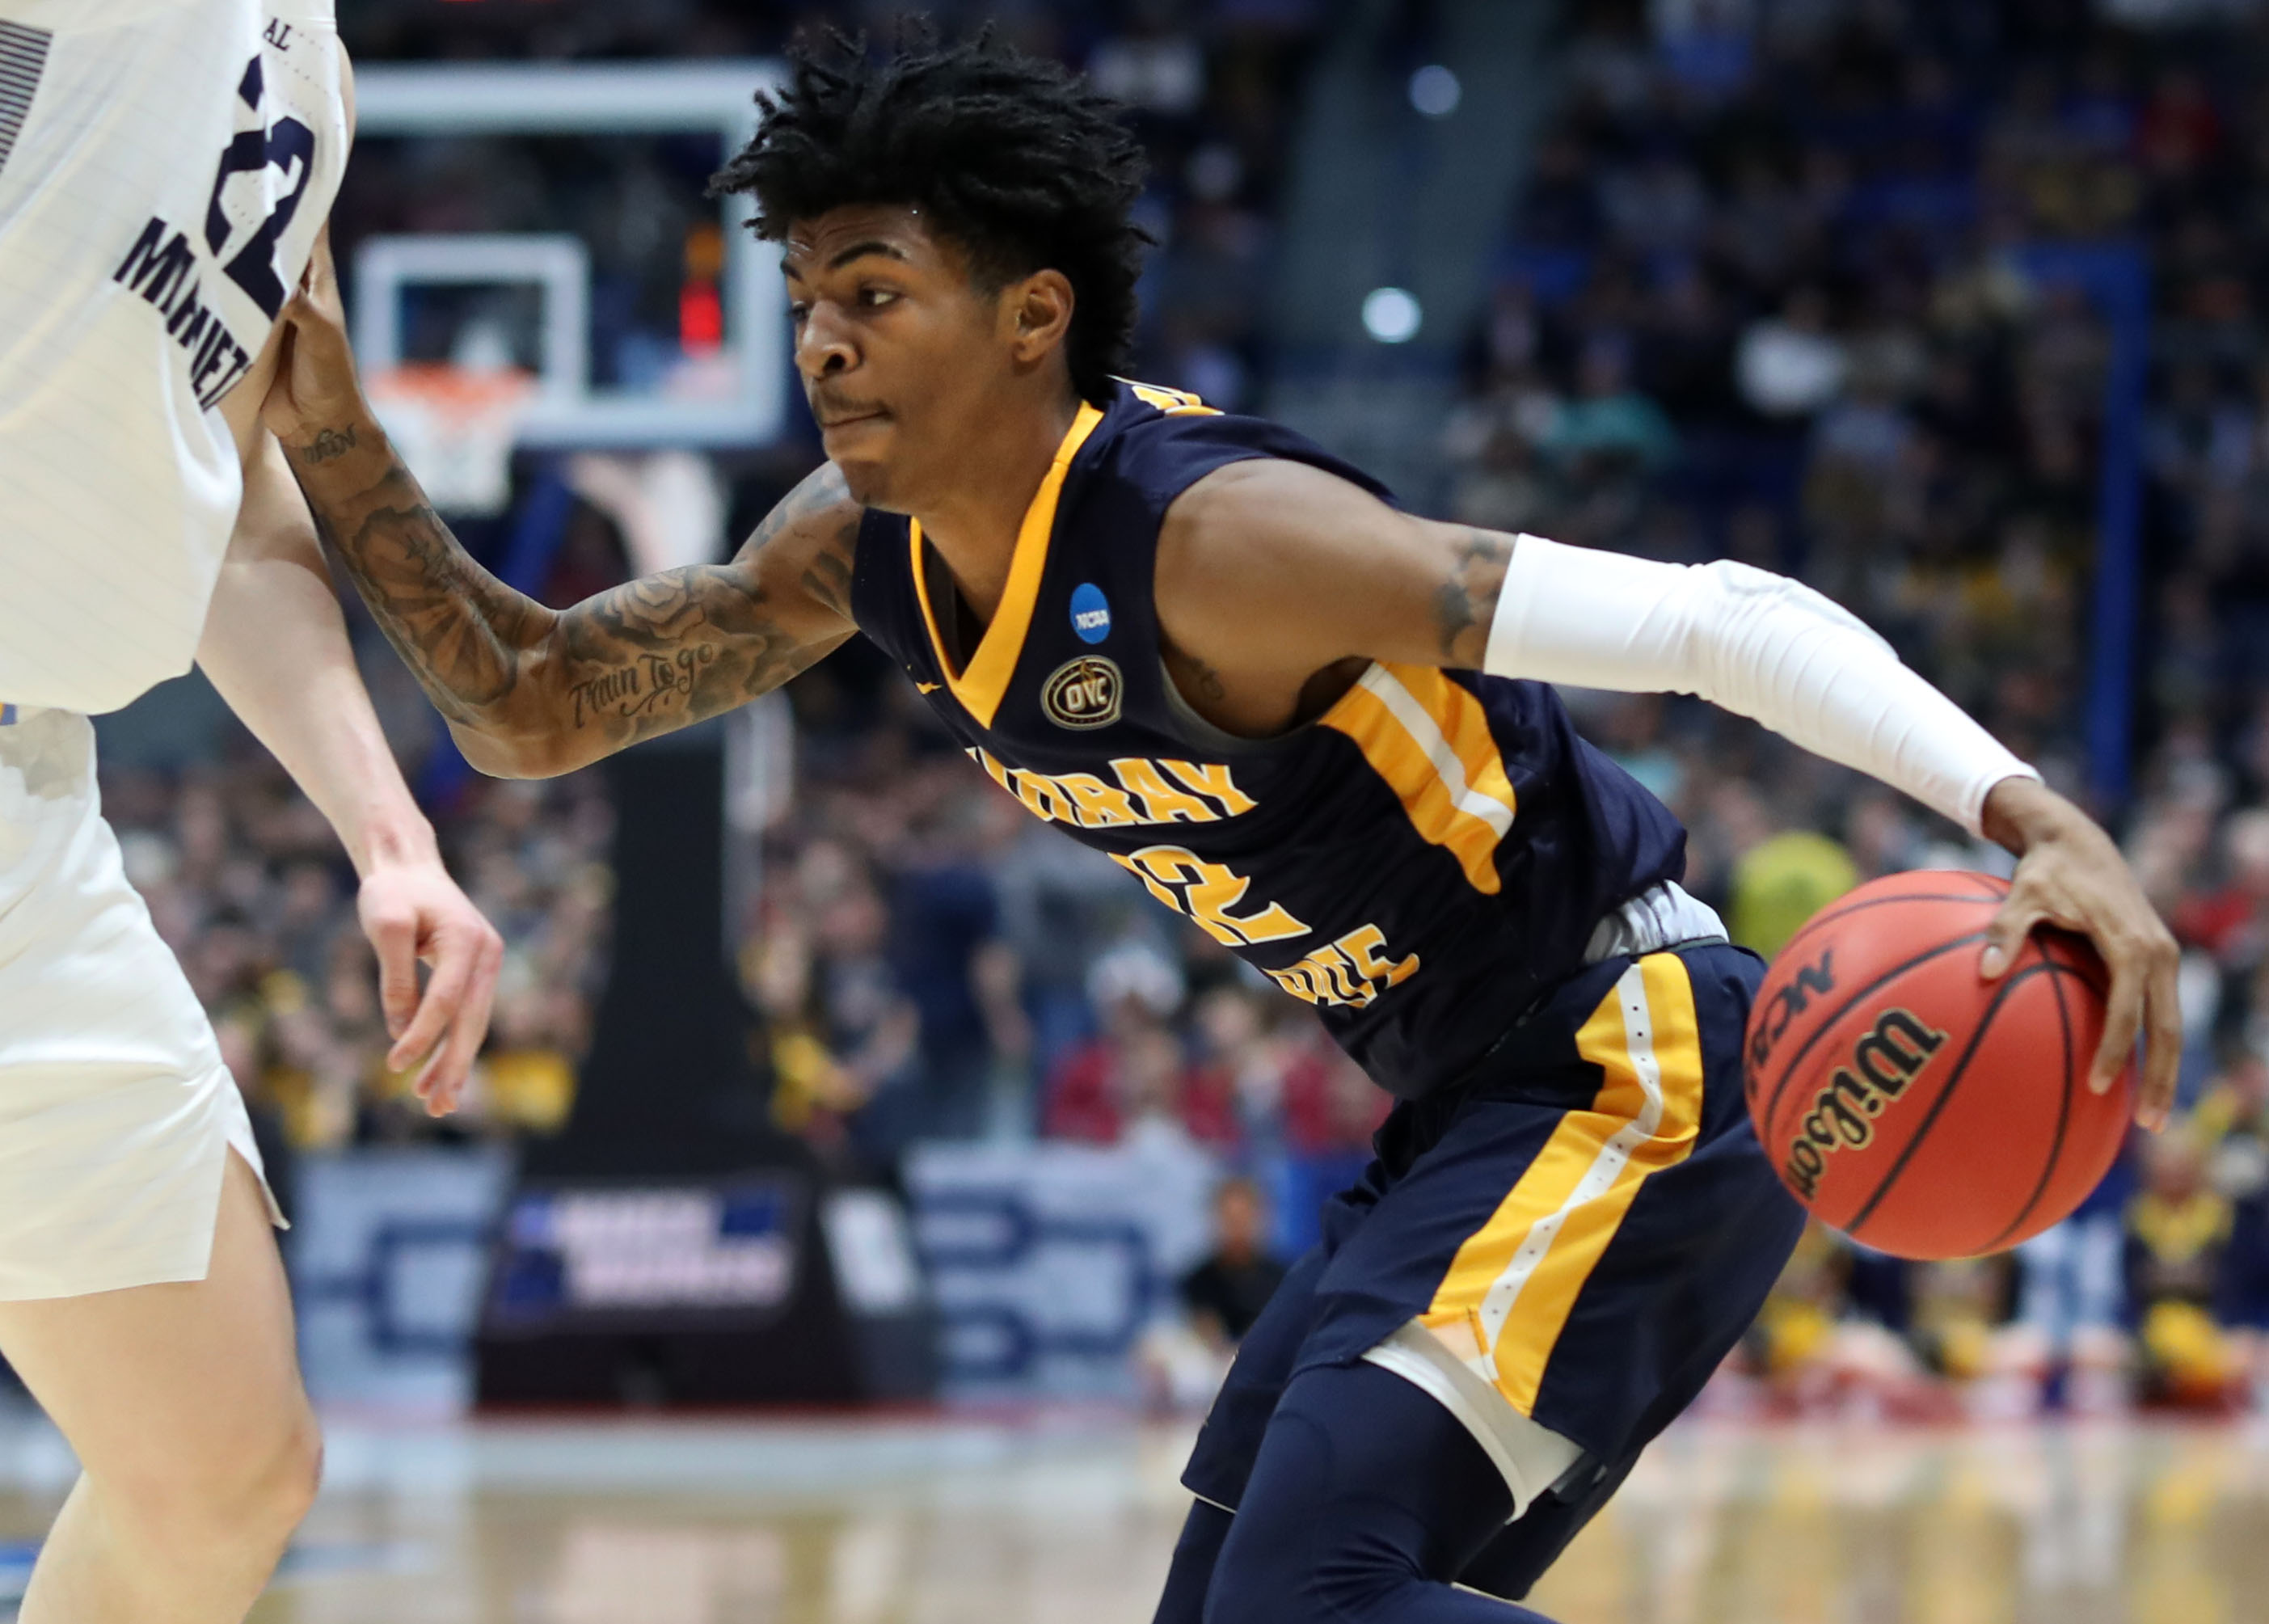 Ja Morant joins Zion Williamson in moving point spreads in 2019 NCAA tournament